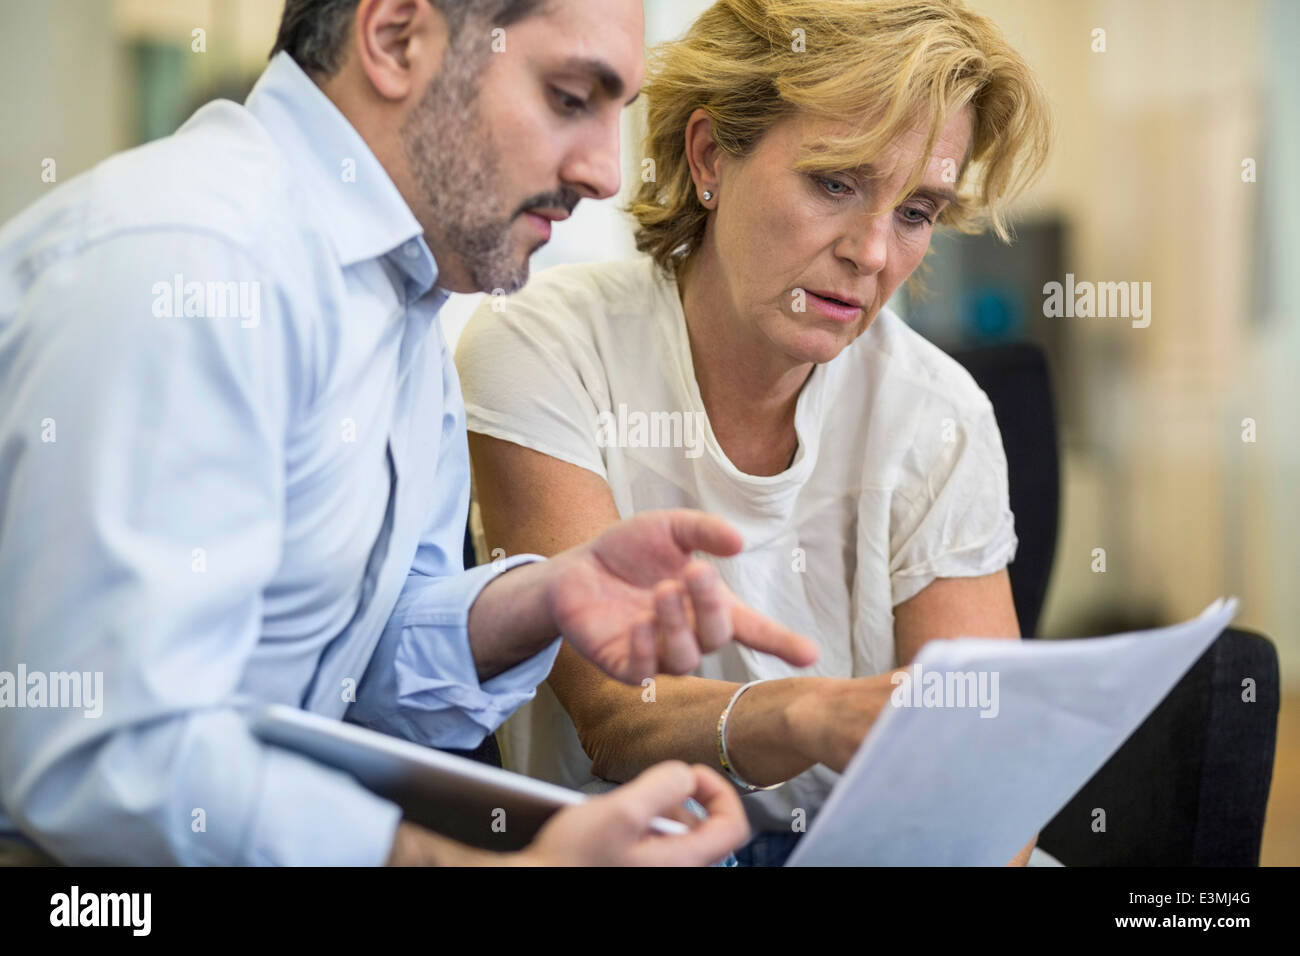 Businesspeople discussing over document in meeting at office - Stock Image